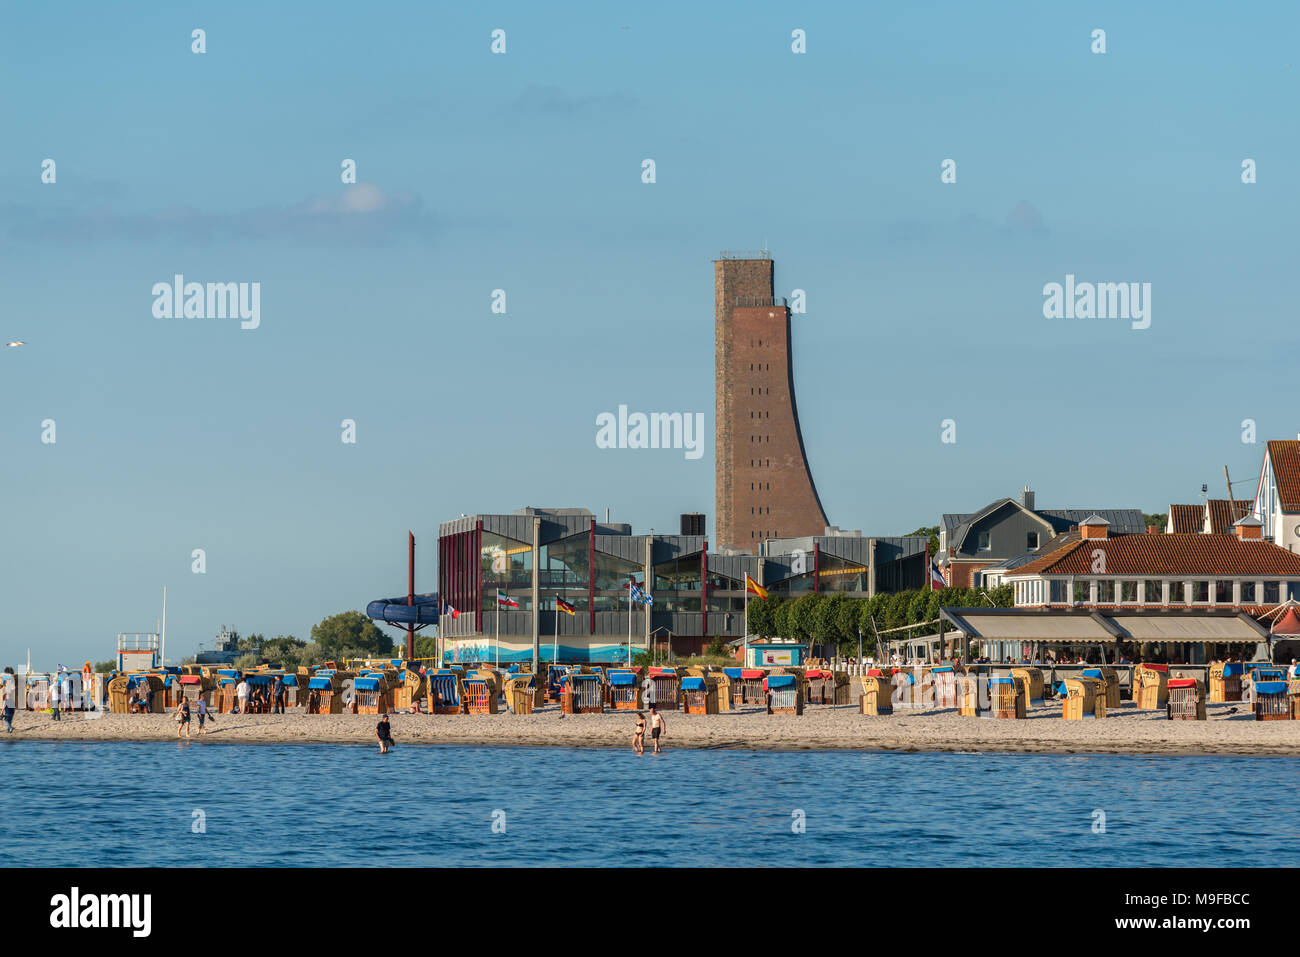 Samall seaside resort of Laboe on the Kiel Fjord with its marine memorial tower, Baltic Sea, Schleswig-Holstein, Germany - Stock Image